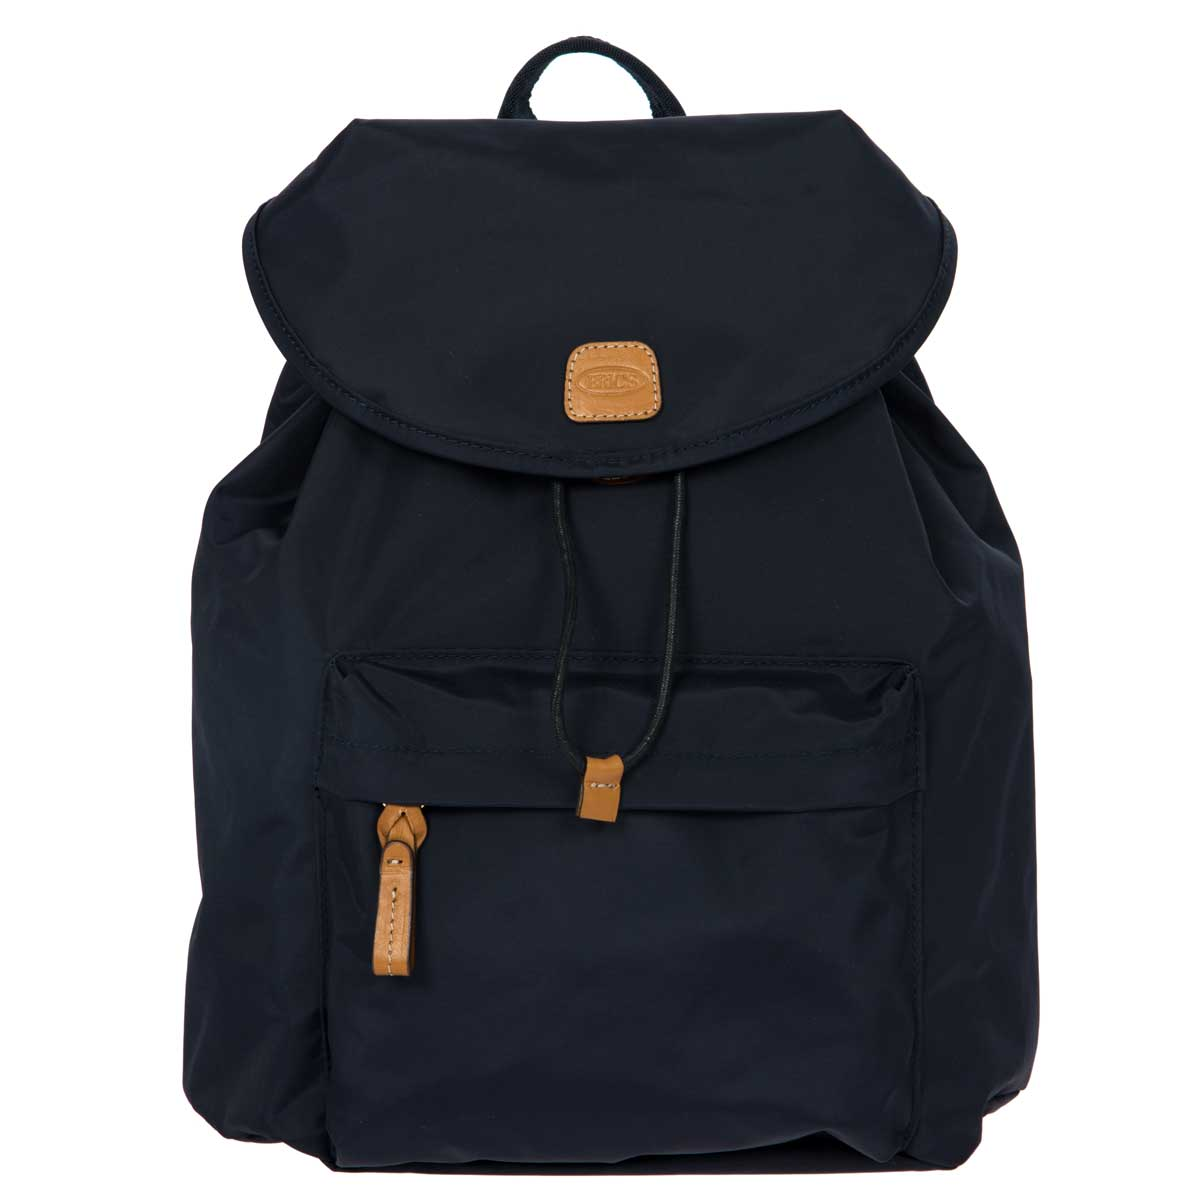 X-Travel City Backpack by Brics (Color: Navy)